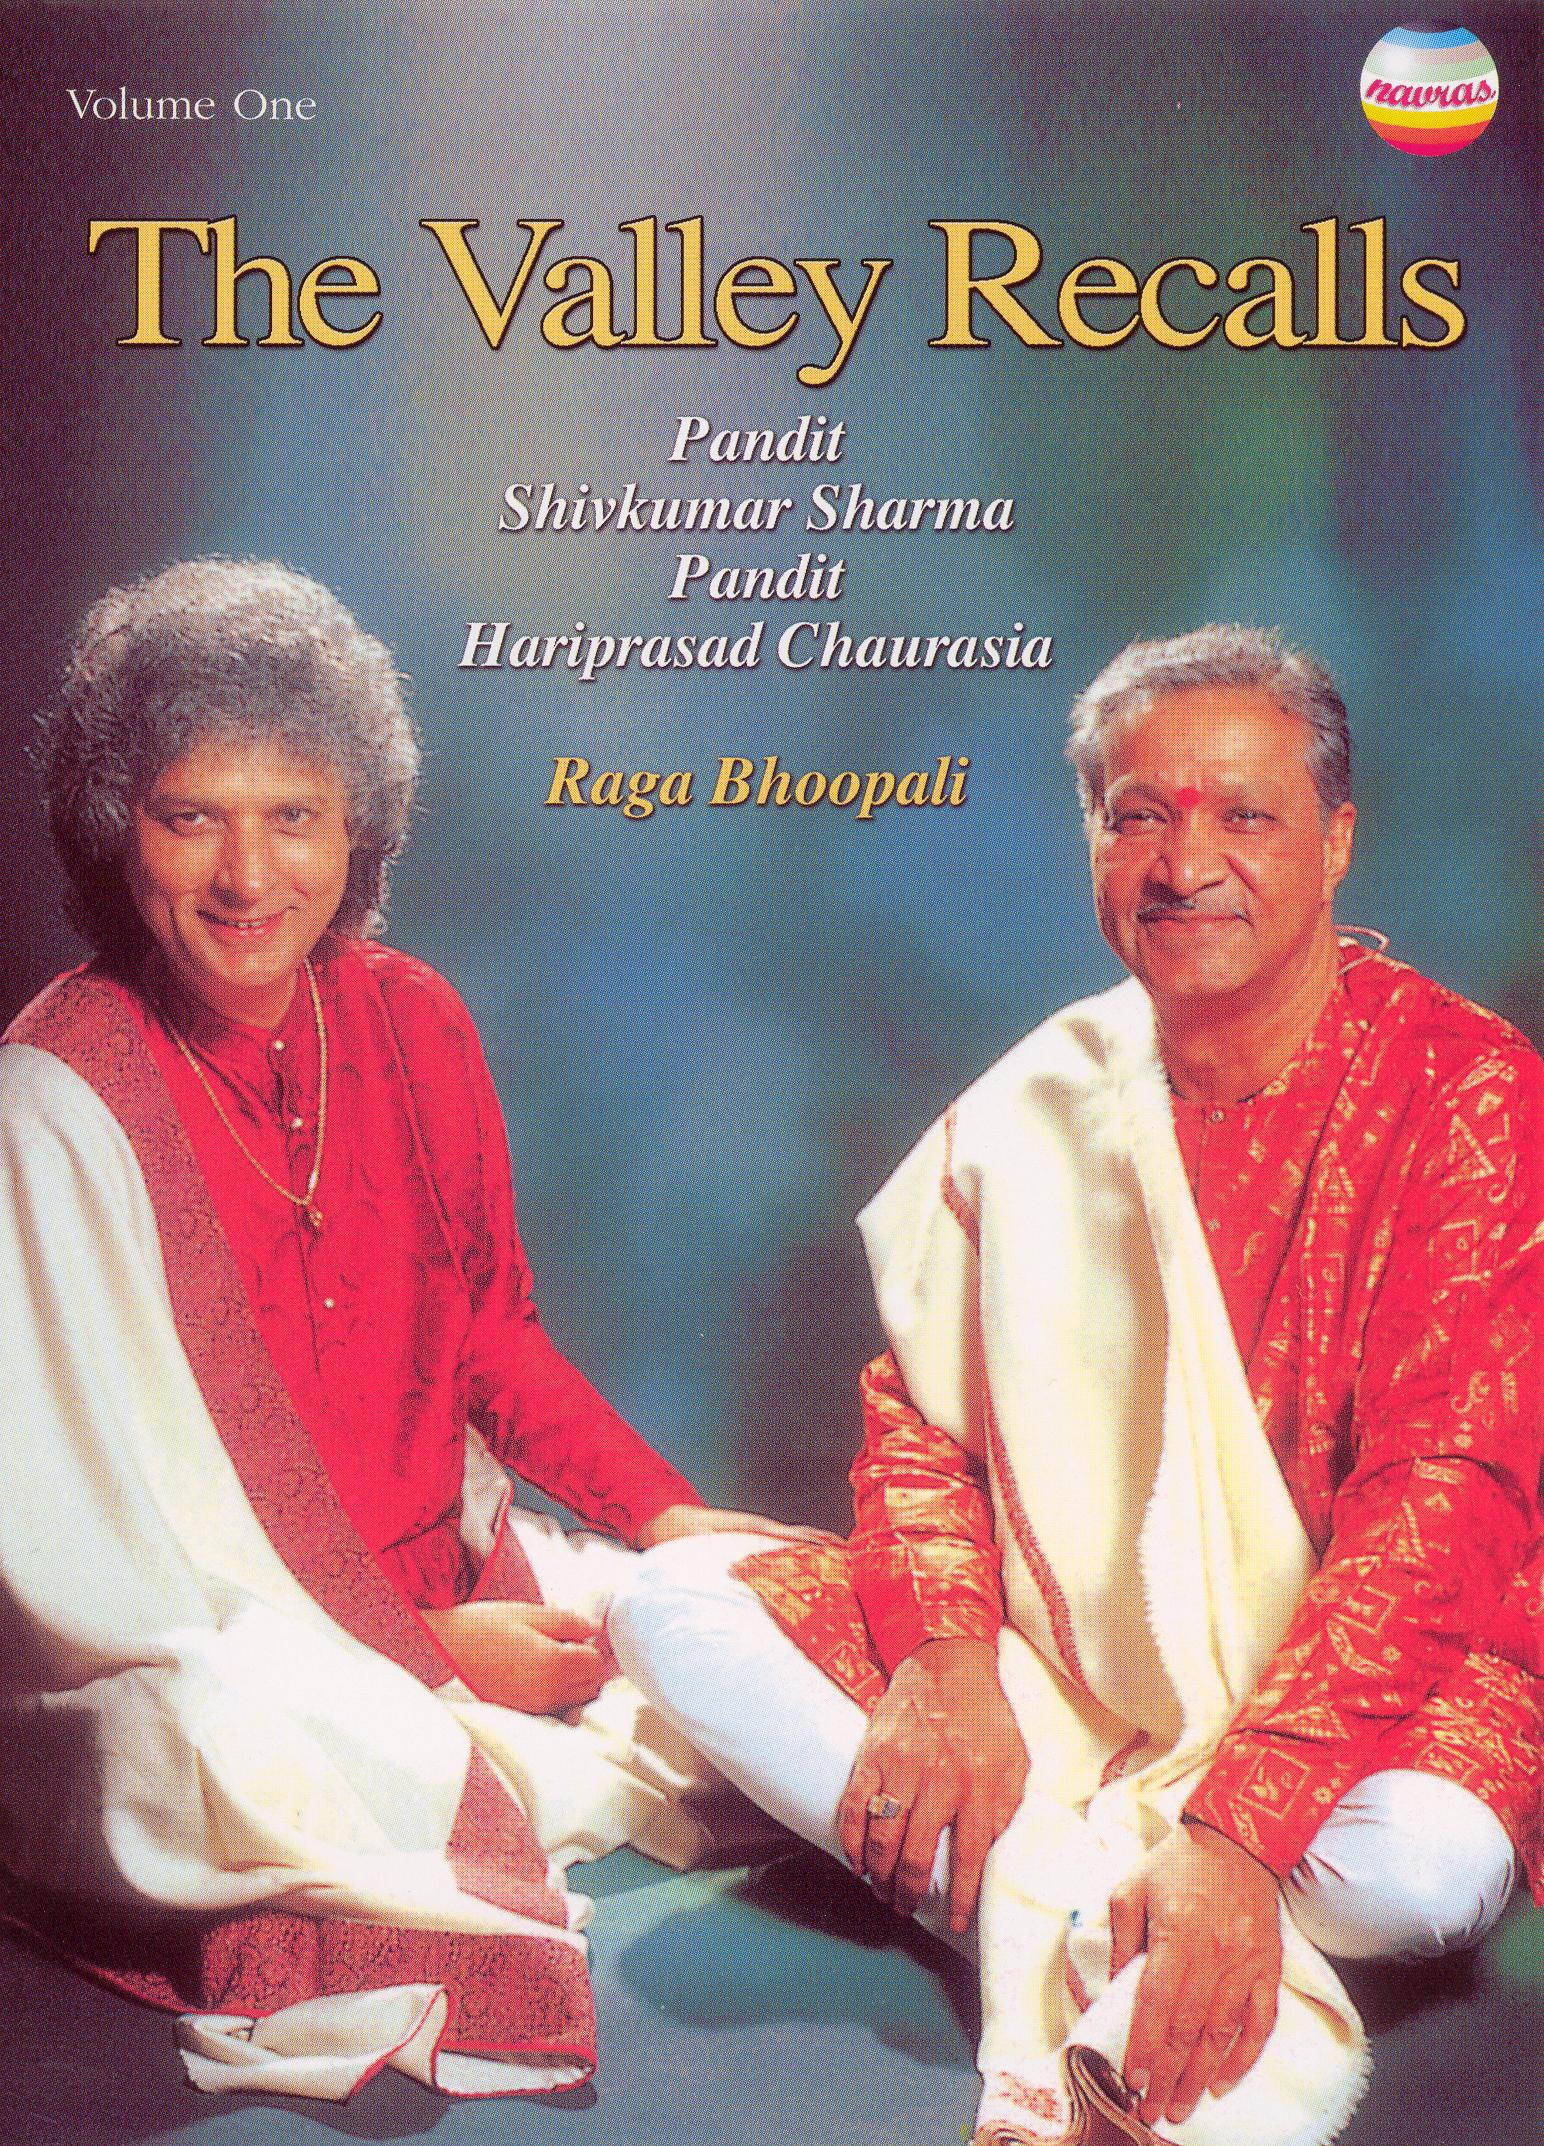 The Valley Recalls - Raga Bhoopali, Vol. 1